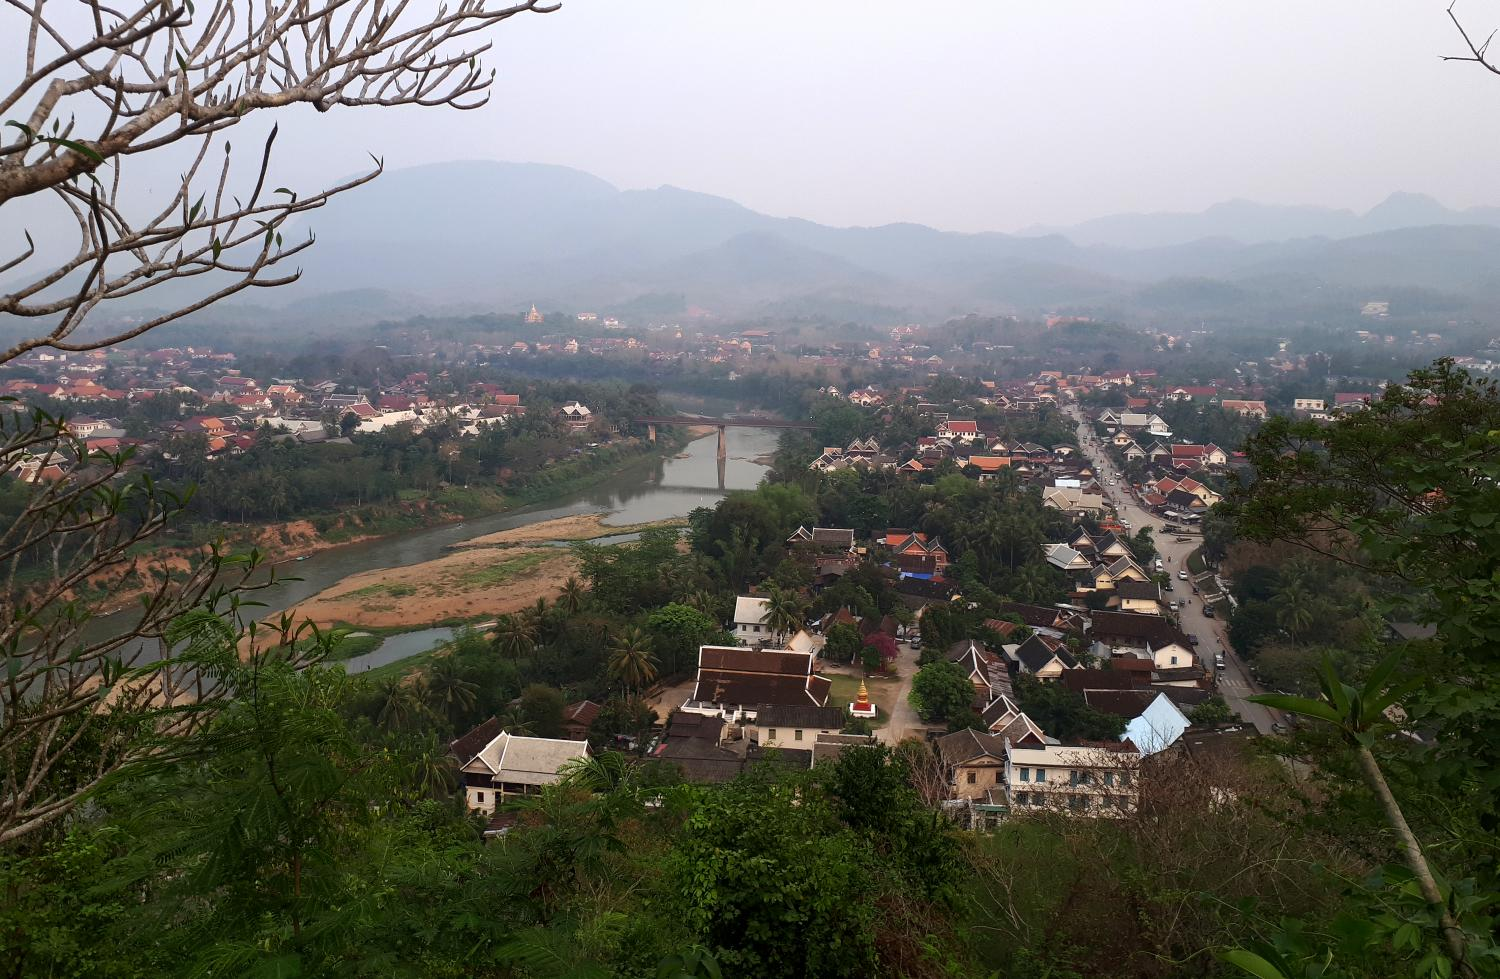 Luang Prabang is facing risks, including of more severe earthquakes, as the Lao government plans to build a large dam just 25km upstream.(Photo: Pongpet Mekloy)